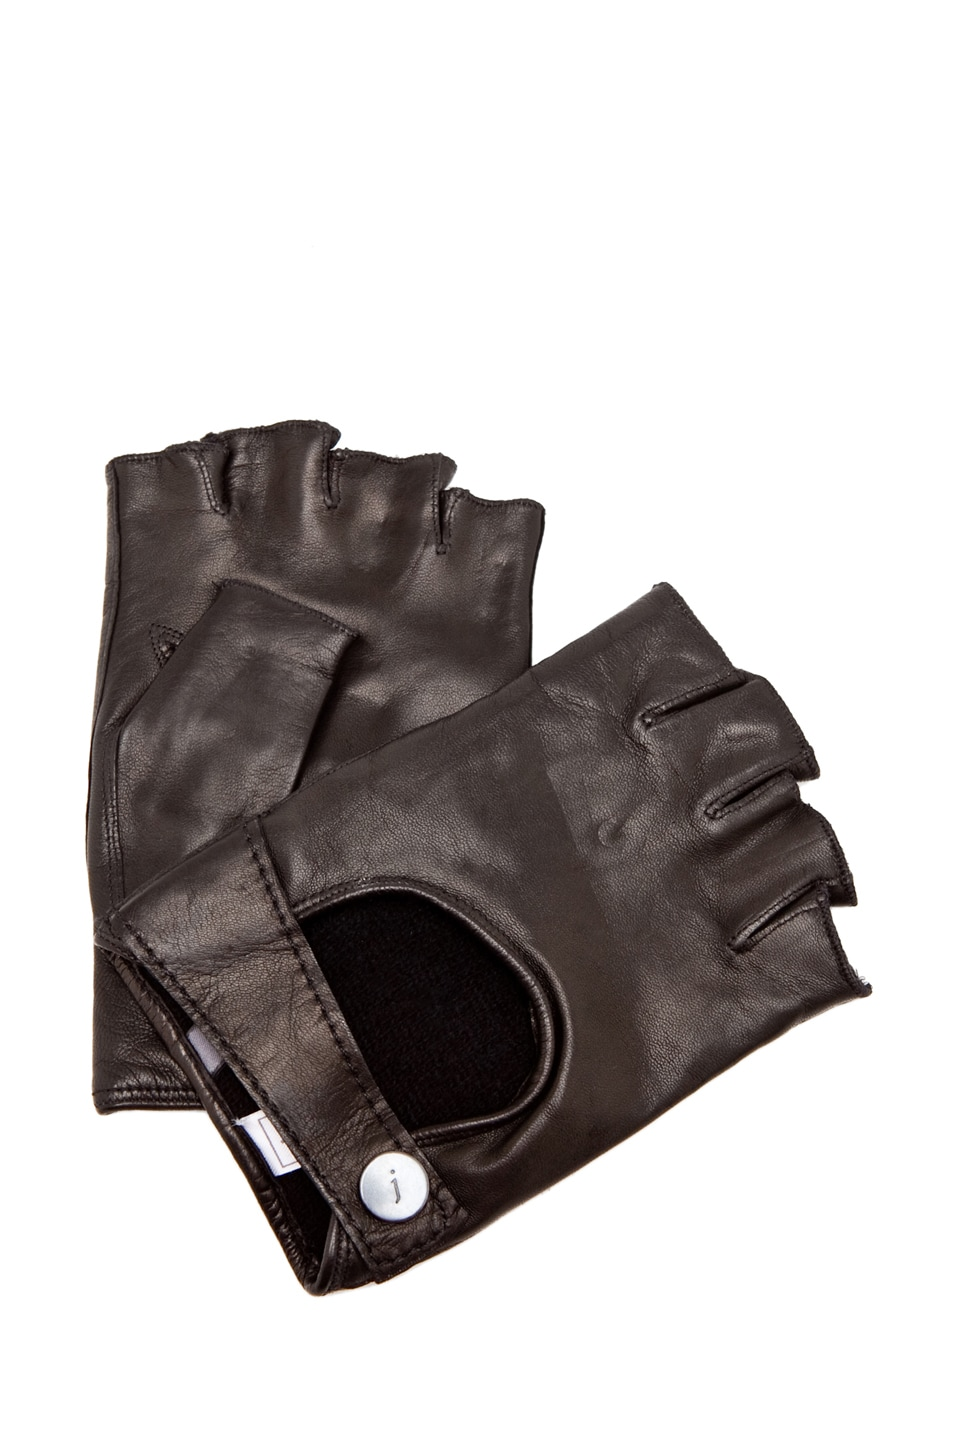 Fingerless Leather Gloves Men Fingerless Leather Gloves